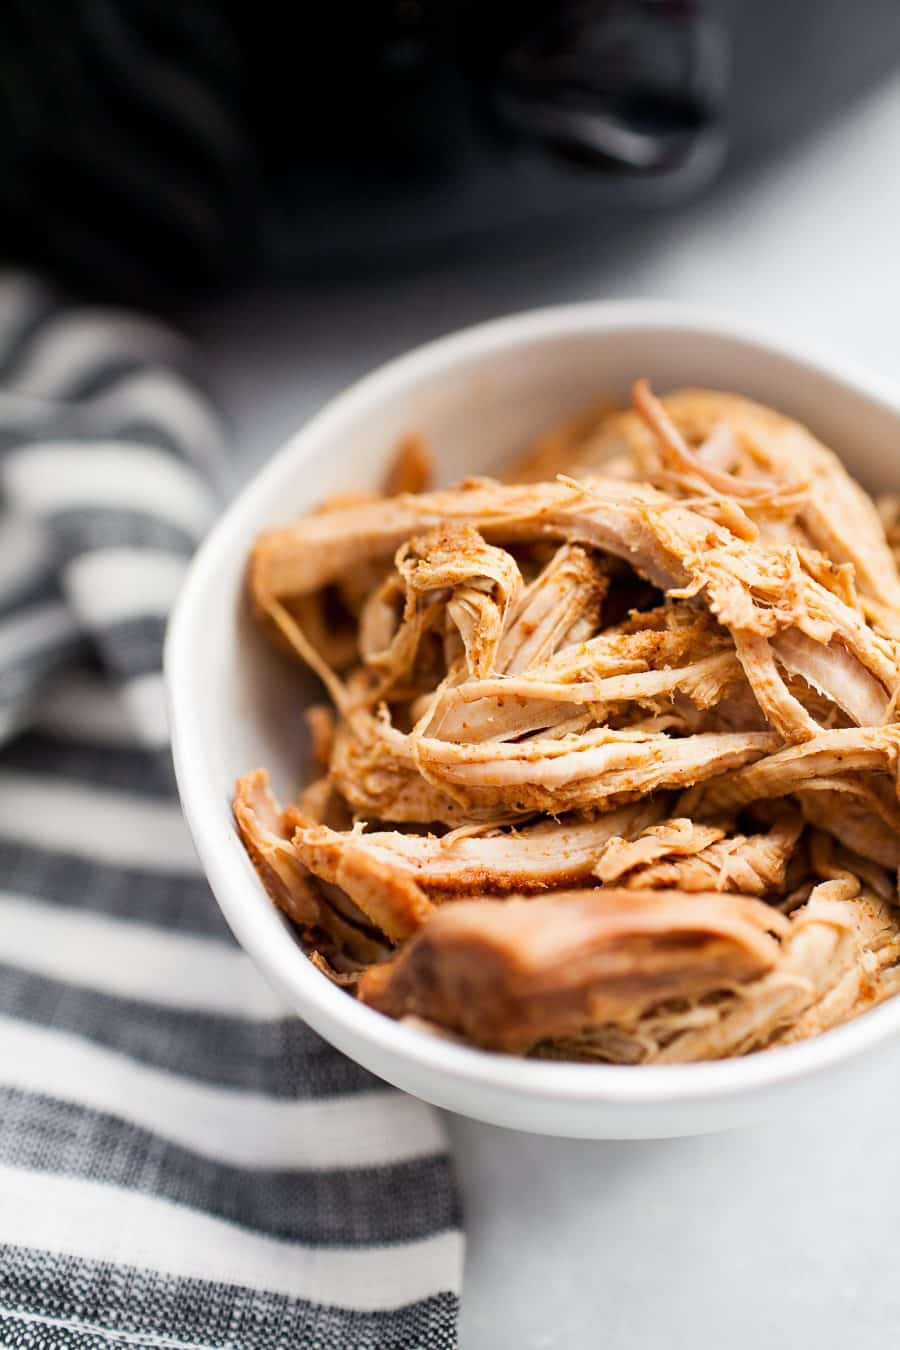 Slow cooker pulled pork is a classic! If you're looking for a healthier, refined sugar free version to make your entire family, this is it. Made with coconut sugar, spices, chicken broth and a dash of soy sauce, thisRefined Sugar Free Slow Cooker Pulled Pork can be thrown in the slow cooker in the morning and enjoyed with the whole family for dinner. This recipe also makes tons of leftovers for enjoying a second or third time around!